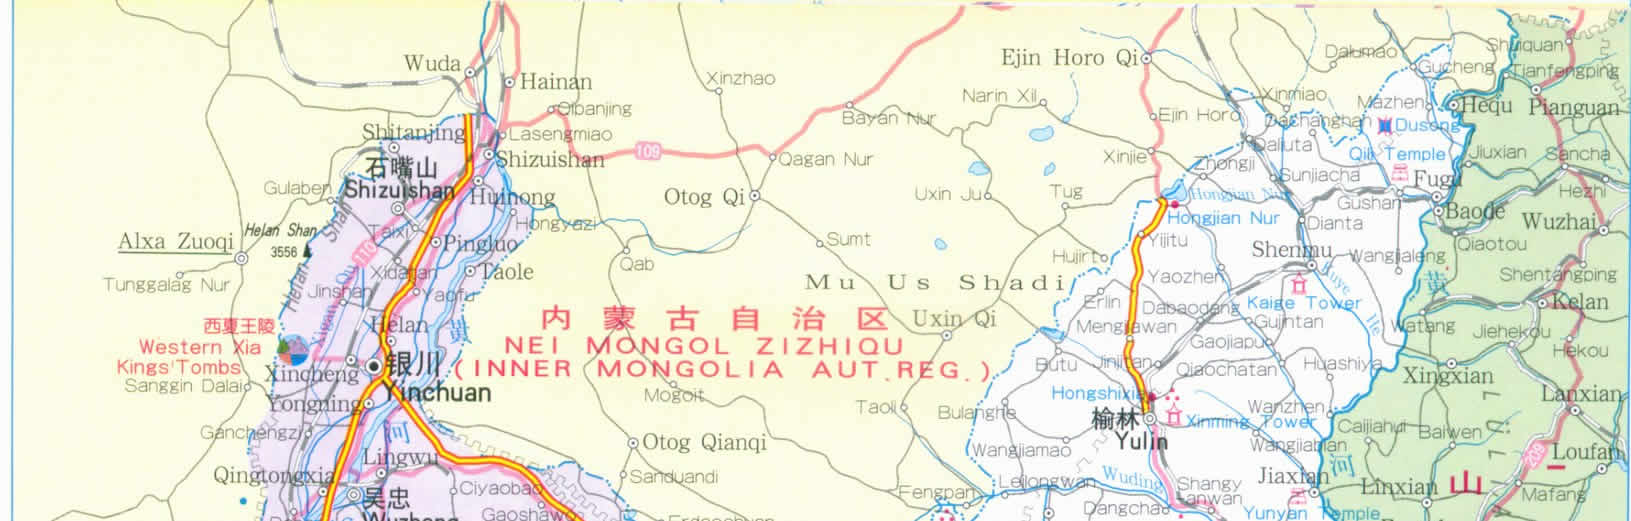 Travel Map of Shannxi Province, China